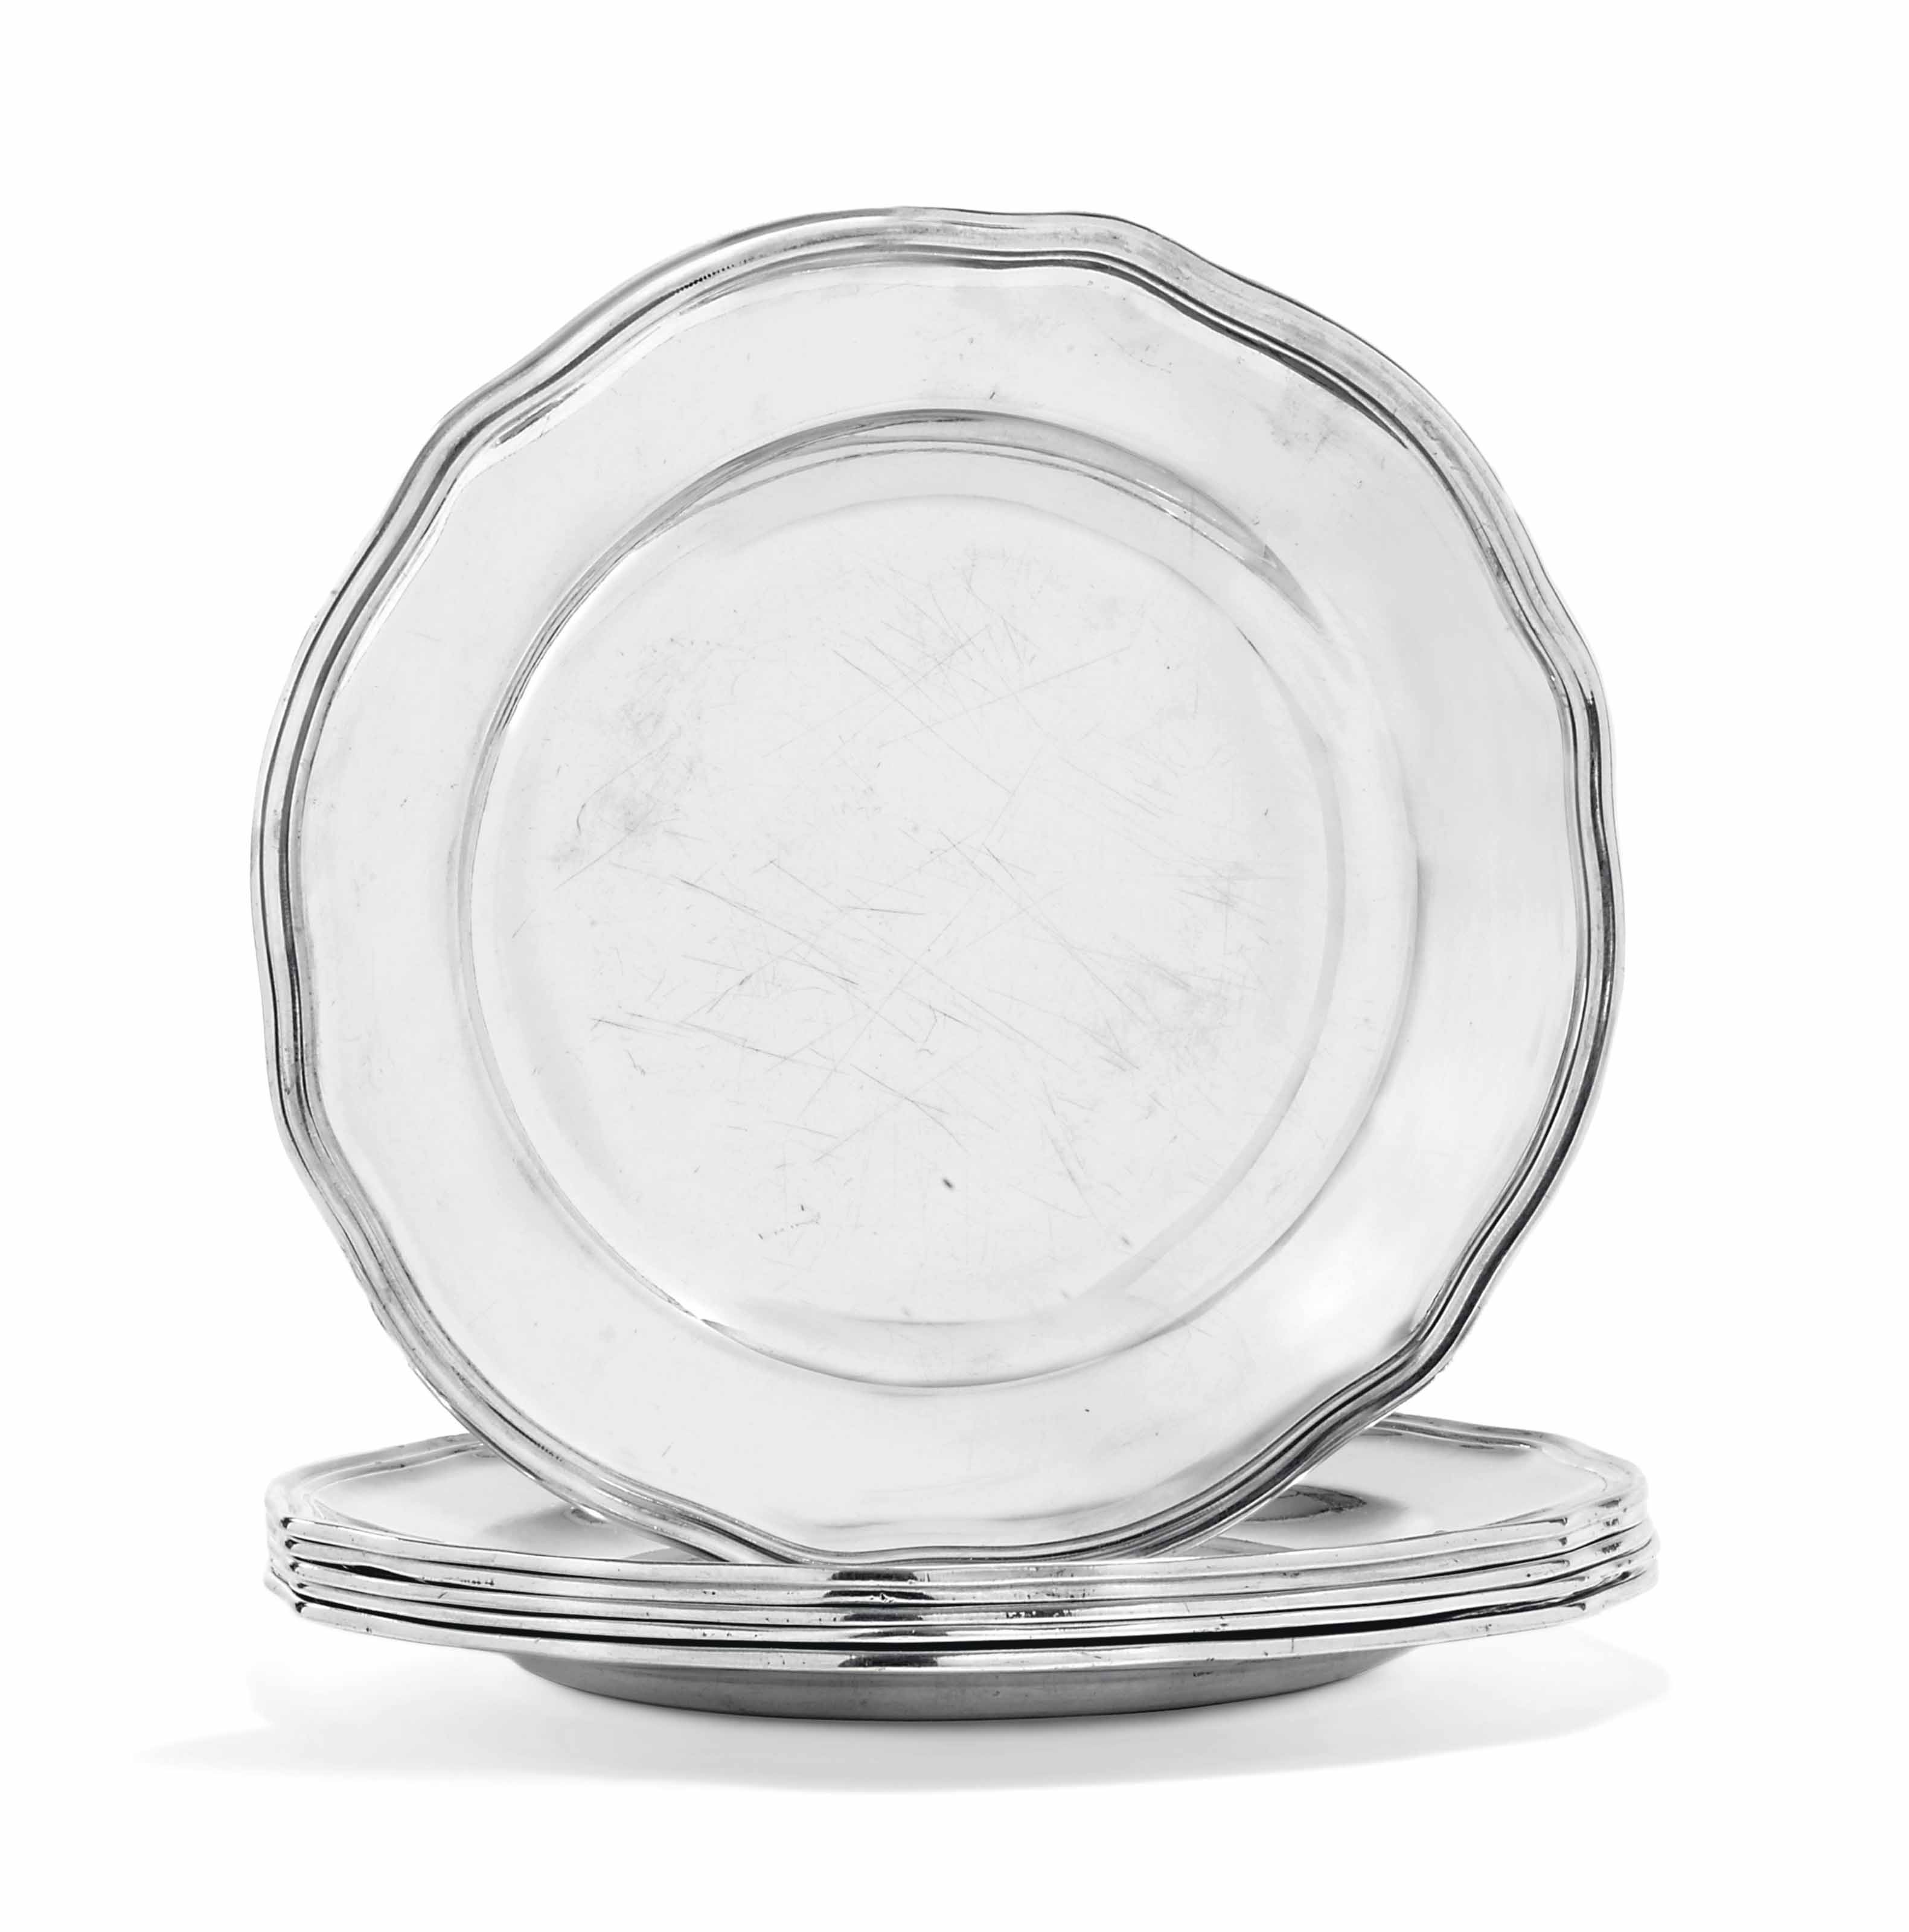 SIX GERMAN SILVER DINNER-PLATES FROM THE ELECTOR OF SAXONY 'FA IN SHIELD SERVICE'